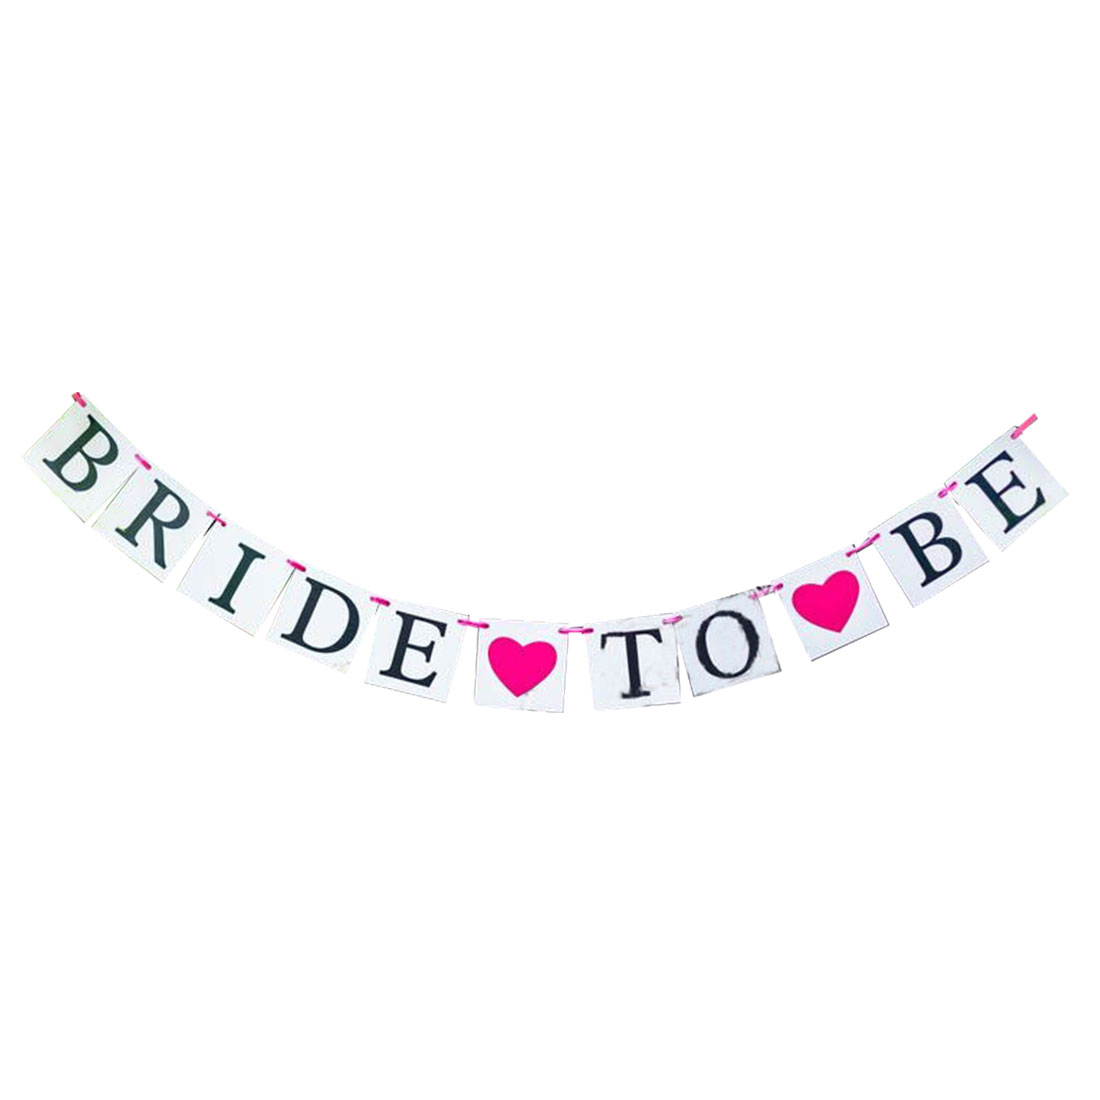 BRIDE TO BE Letter Engagement Party Ornament Photo Prop Banner Set 11 in 1